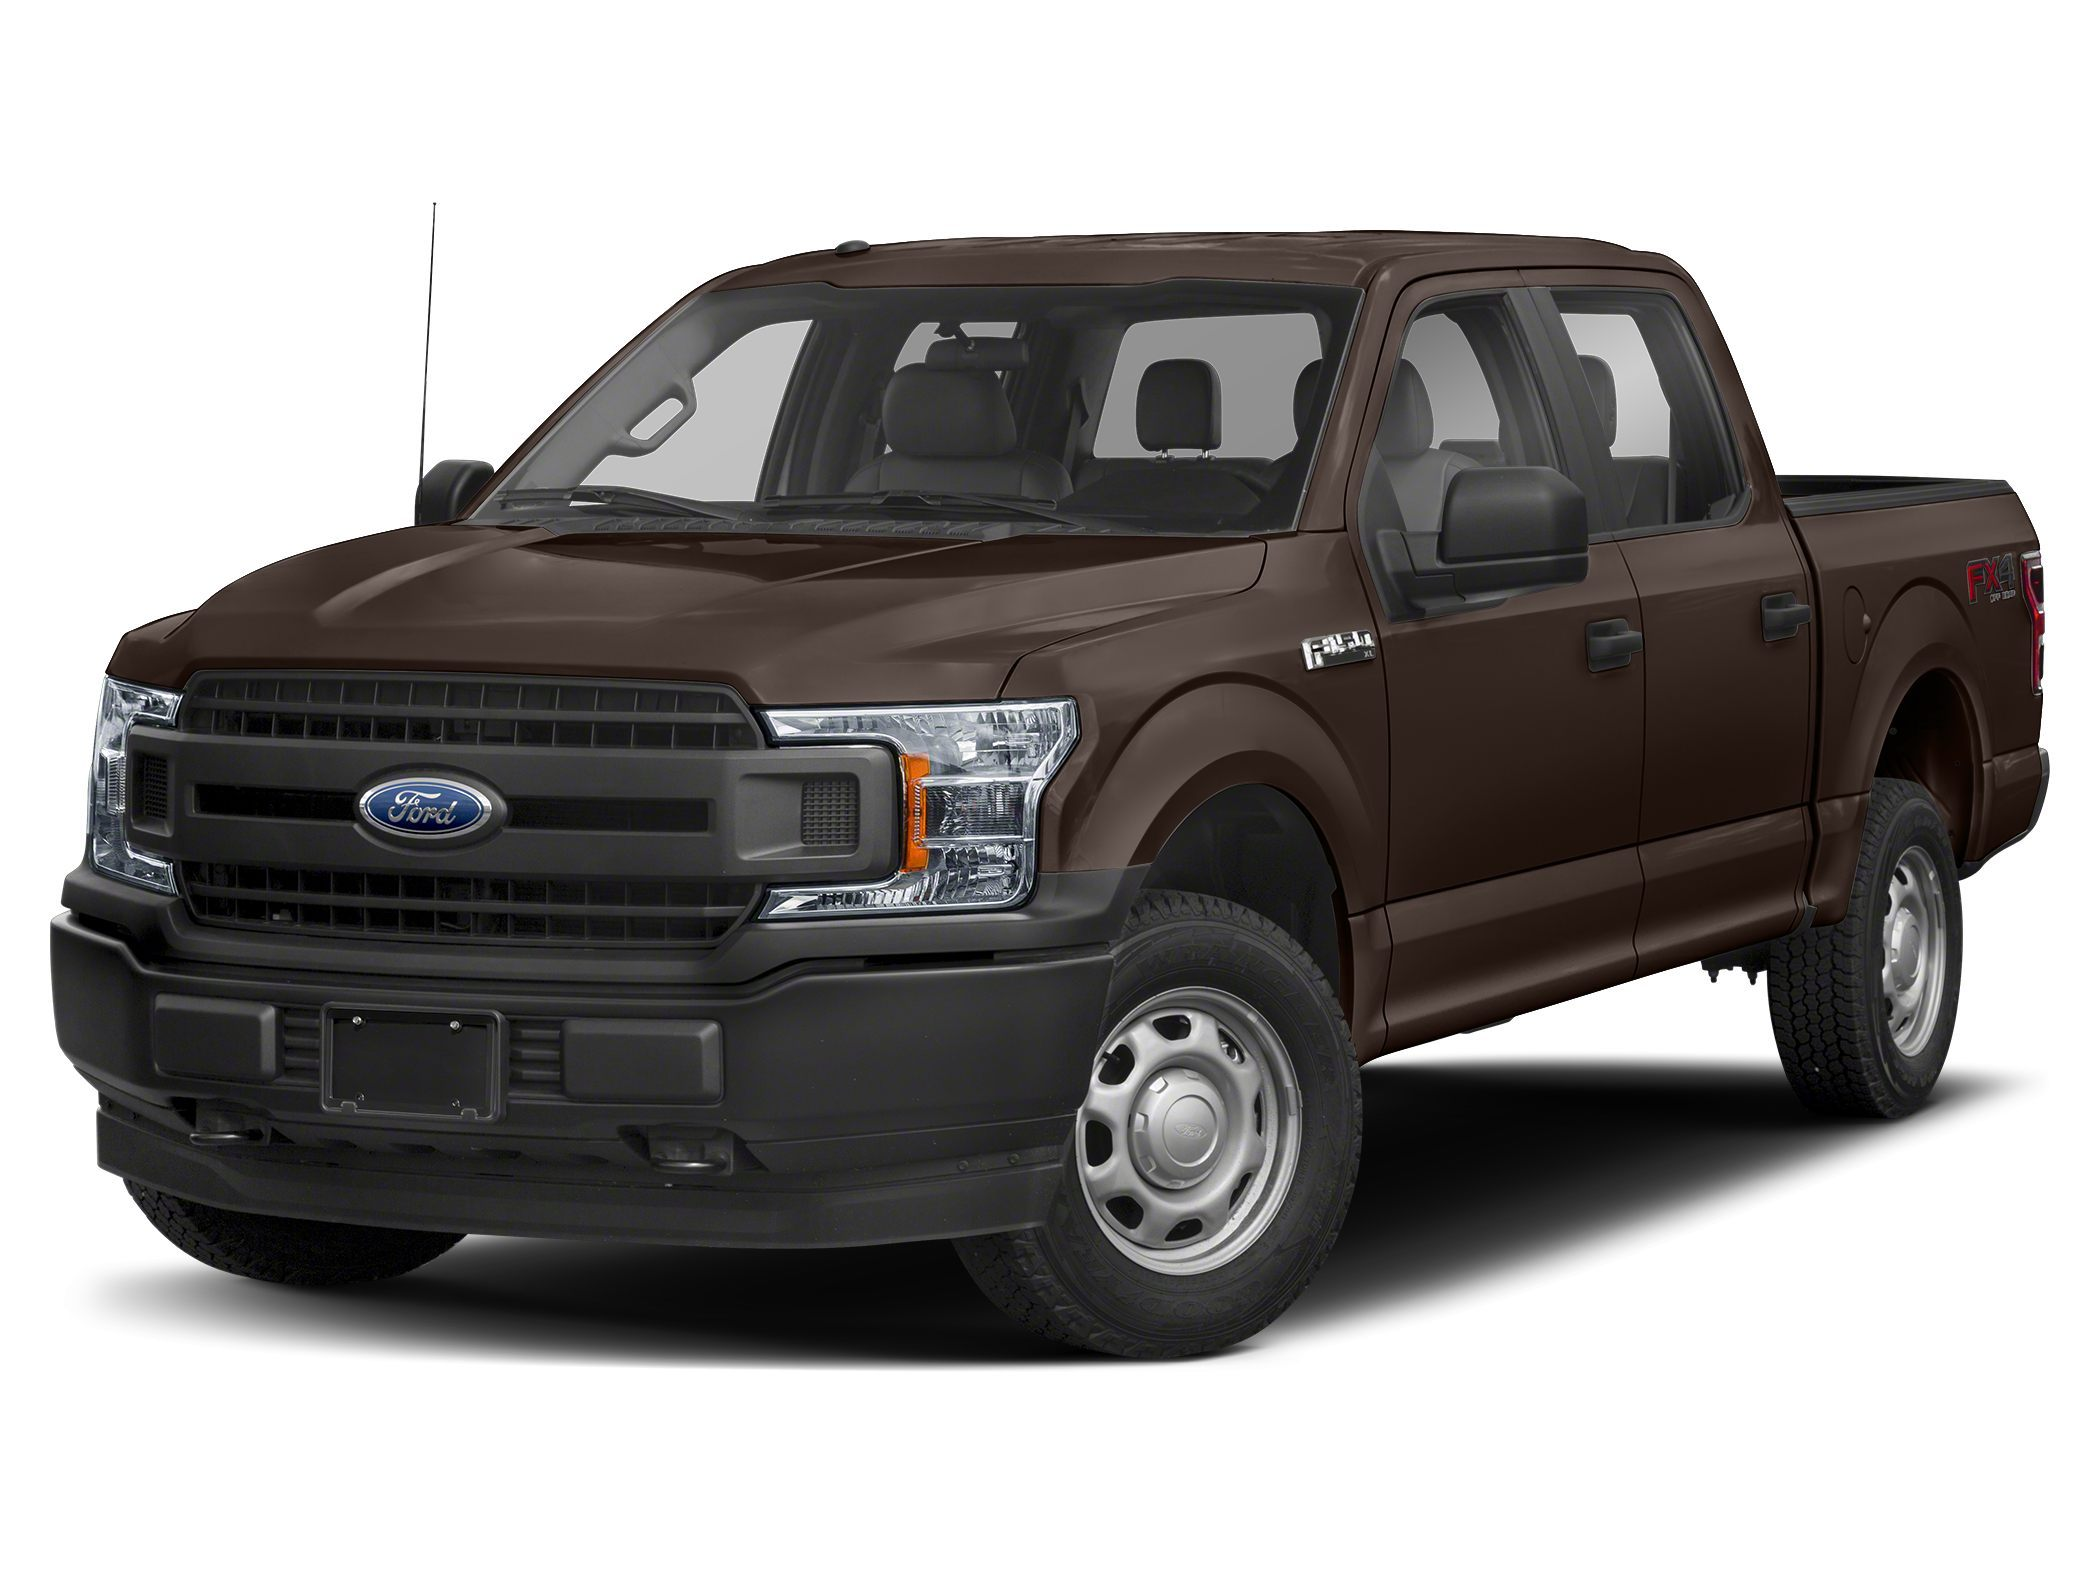 used 2020 Ford F-150 car, priced at $60,997